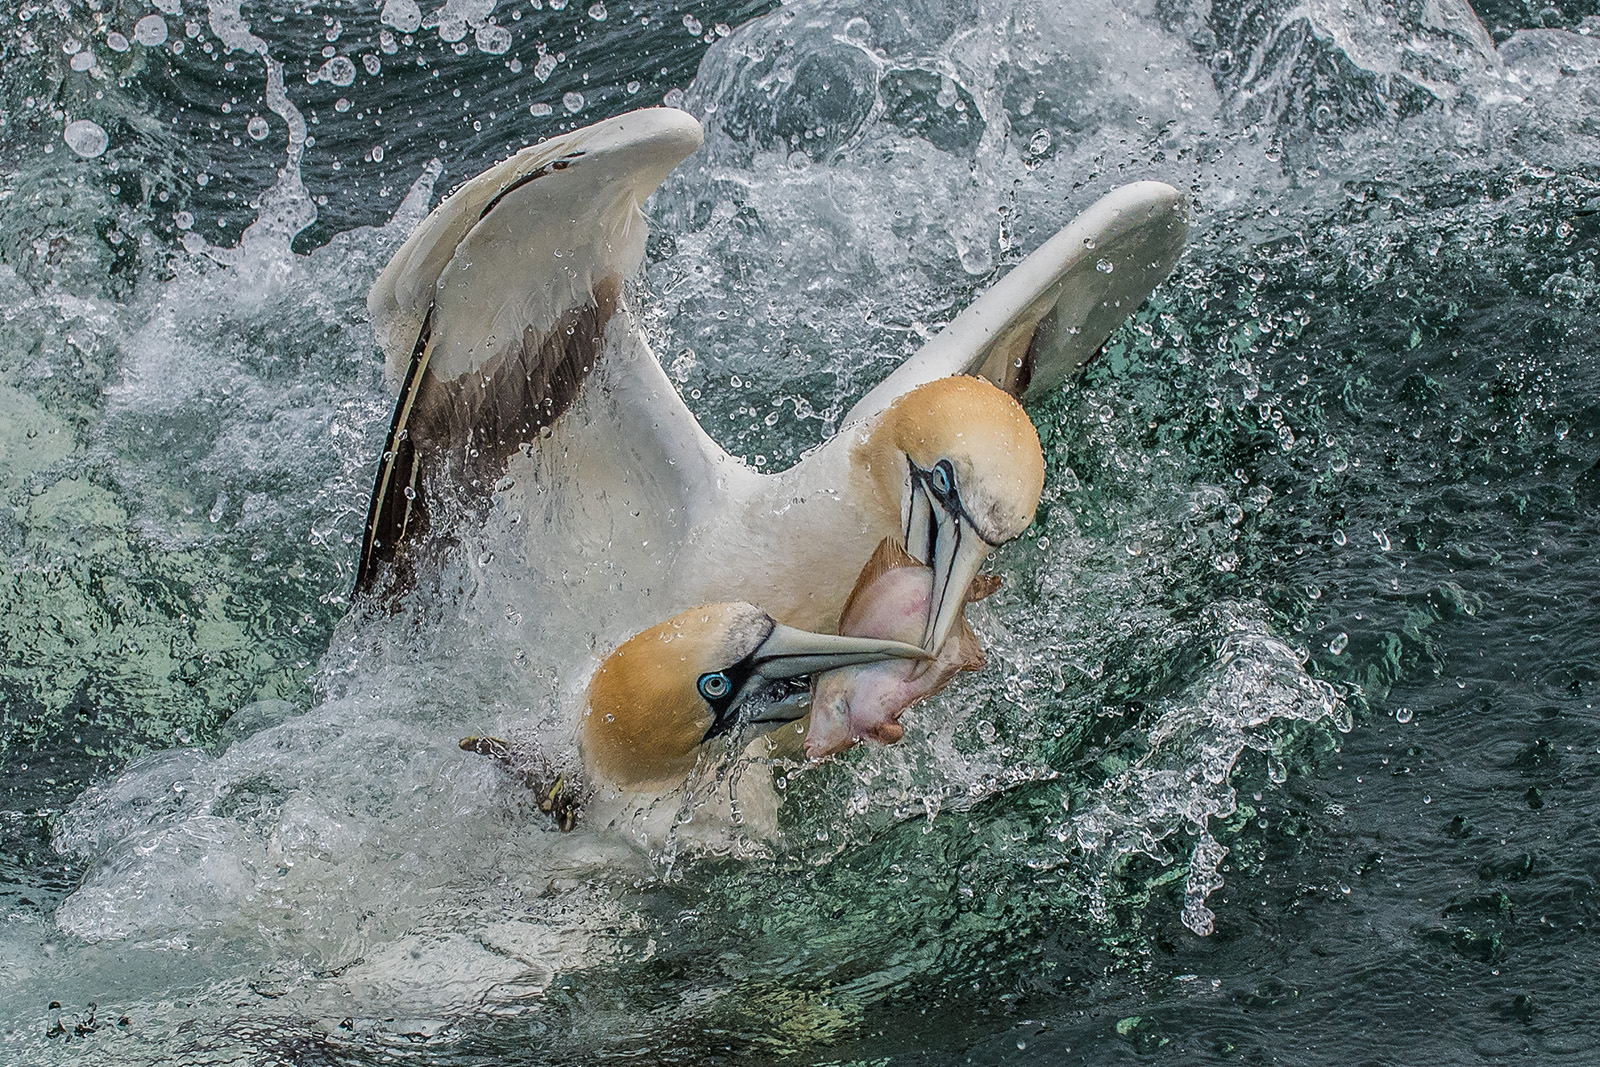 Gannets fighting over fish